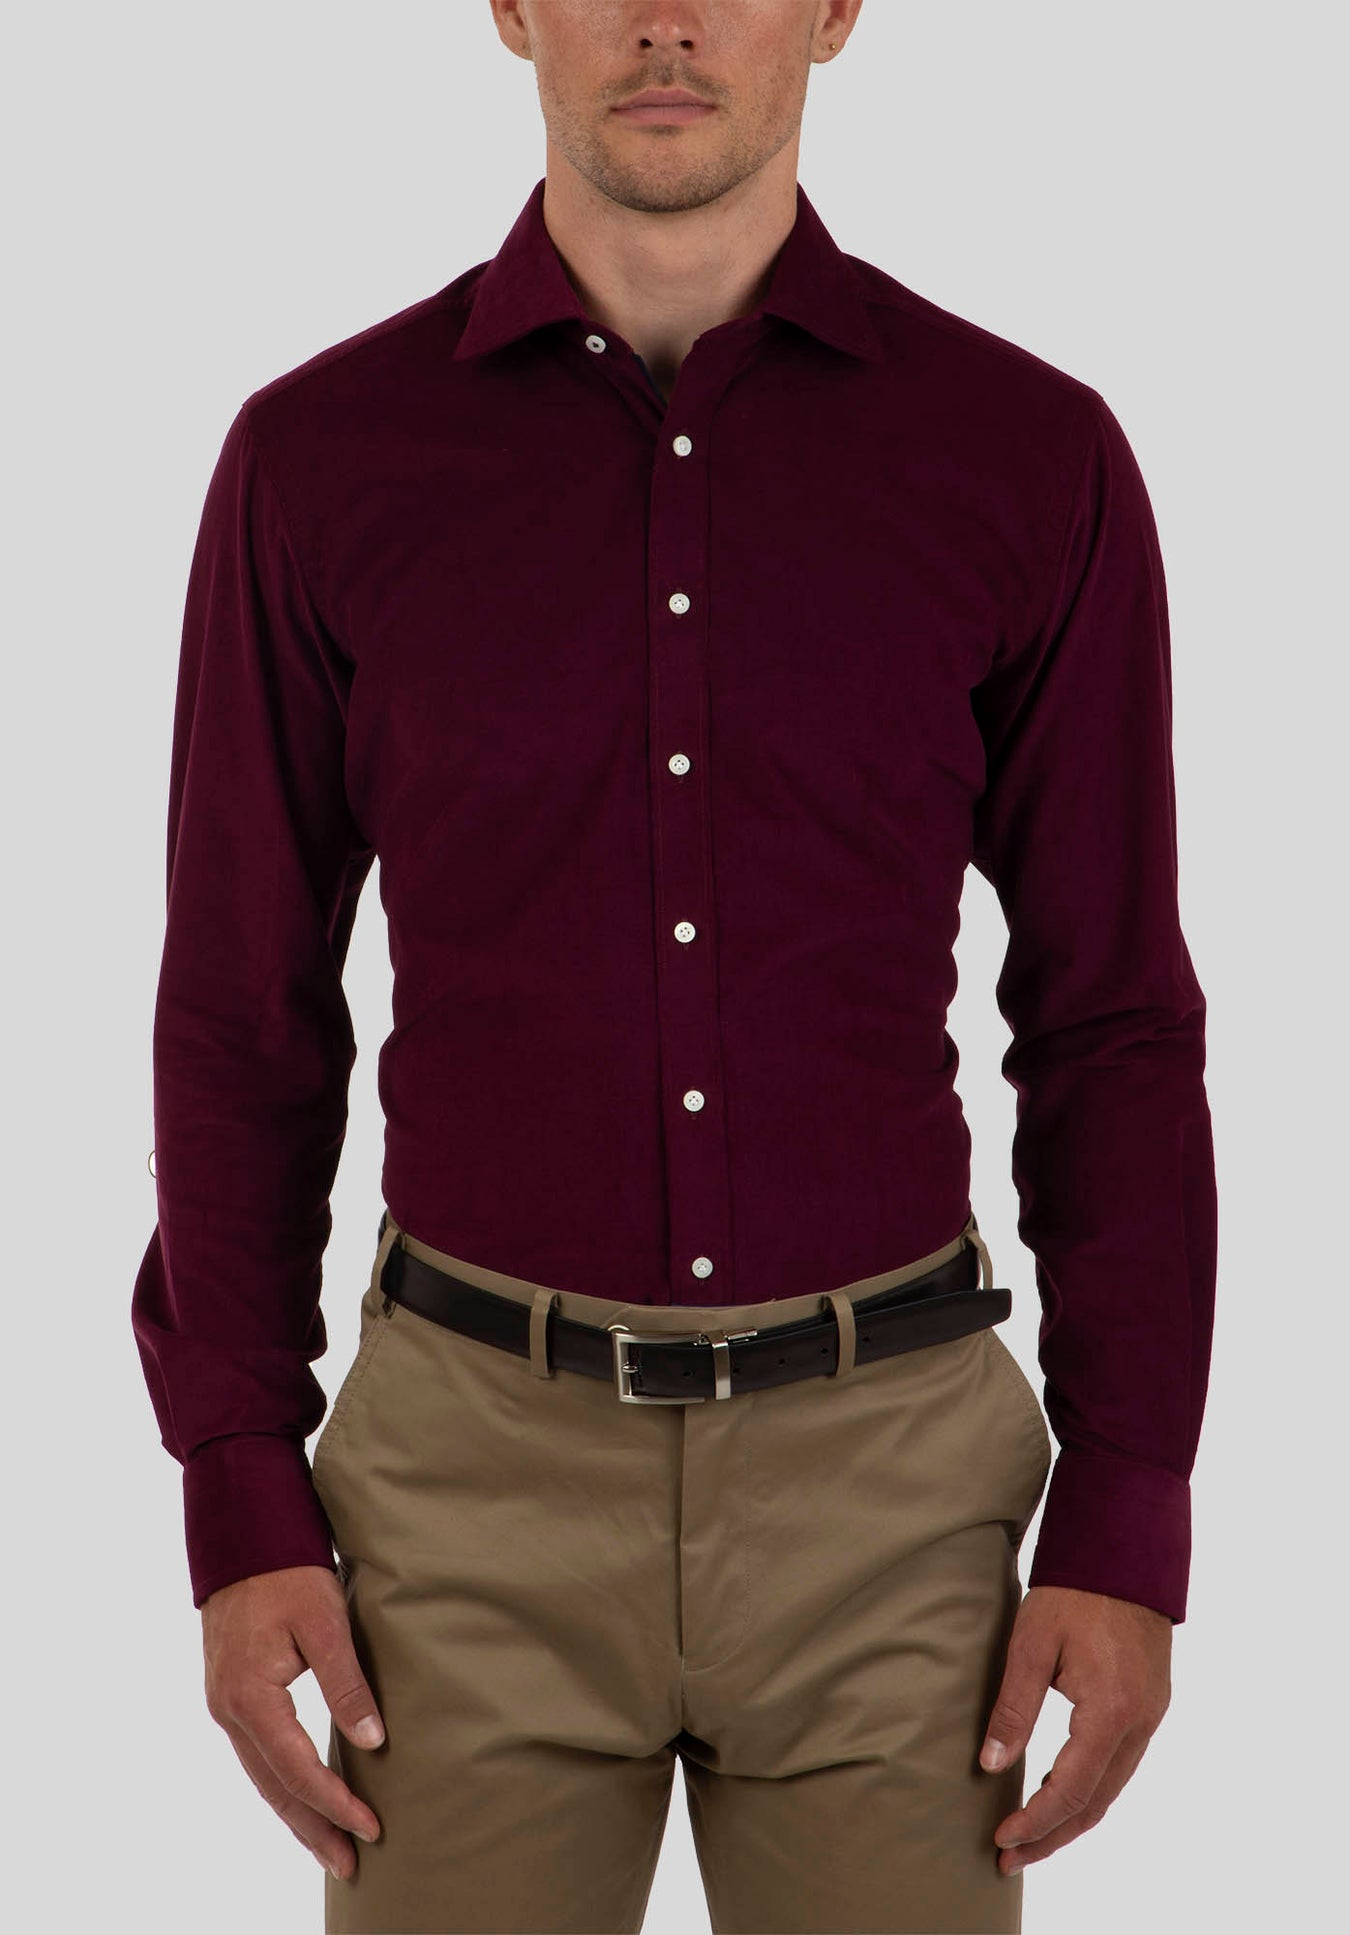 BREACH SHIRT FJL868 - Wine